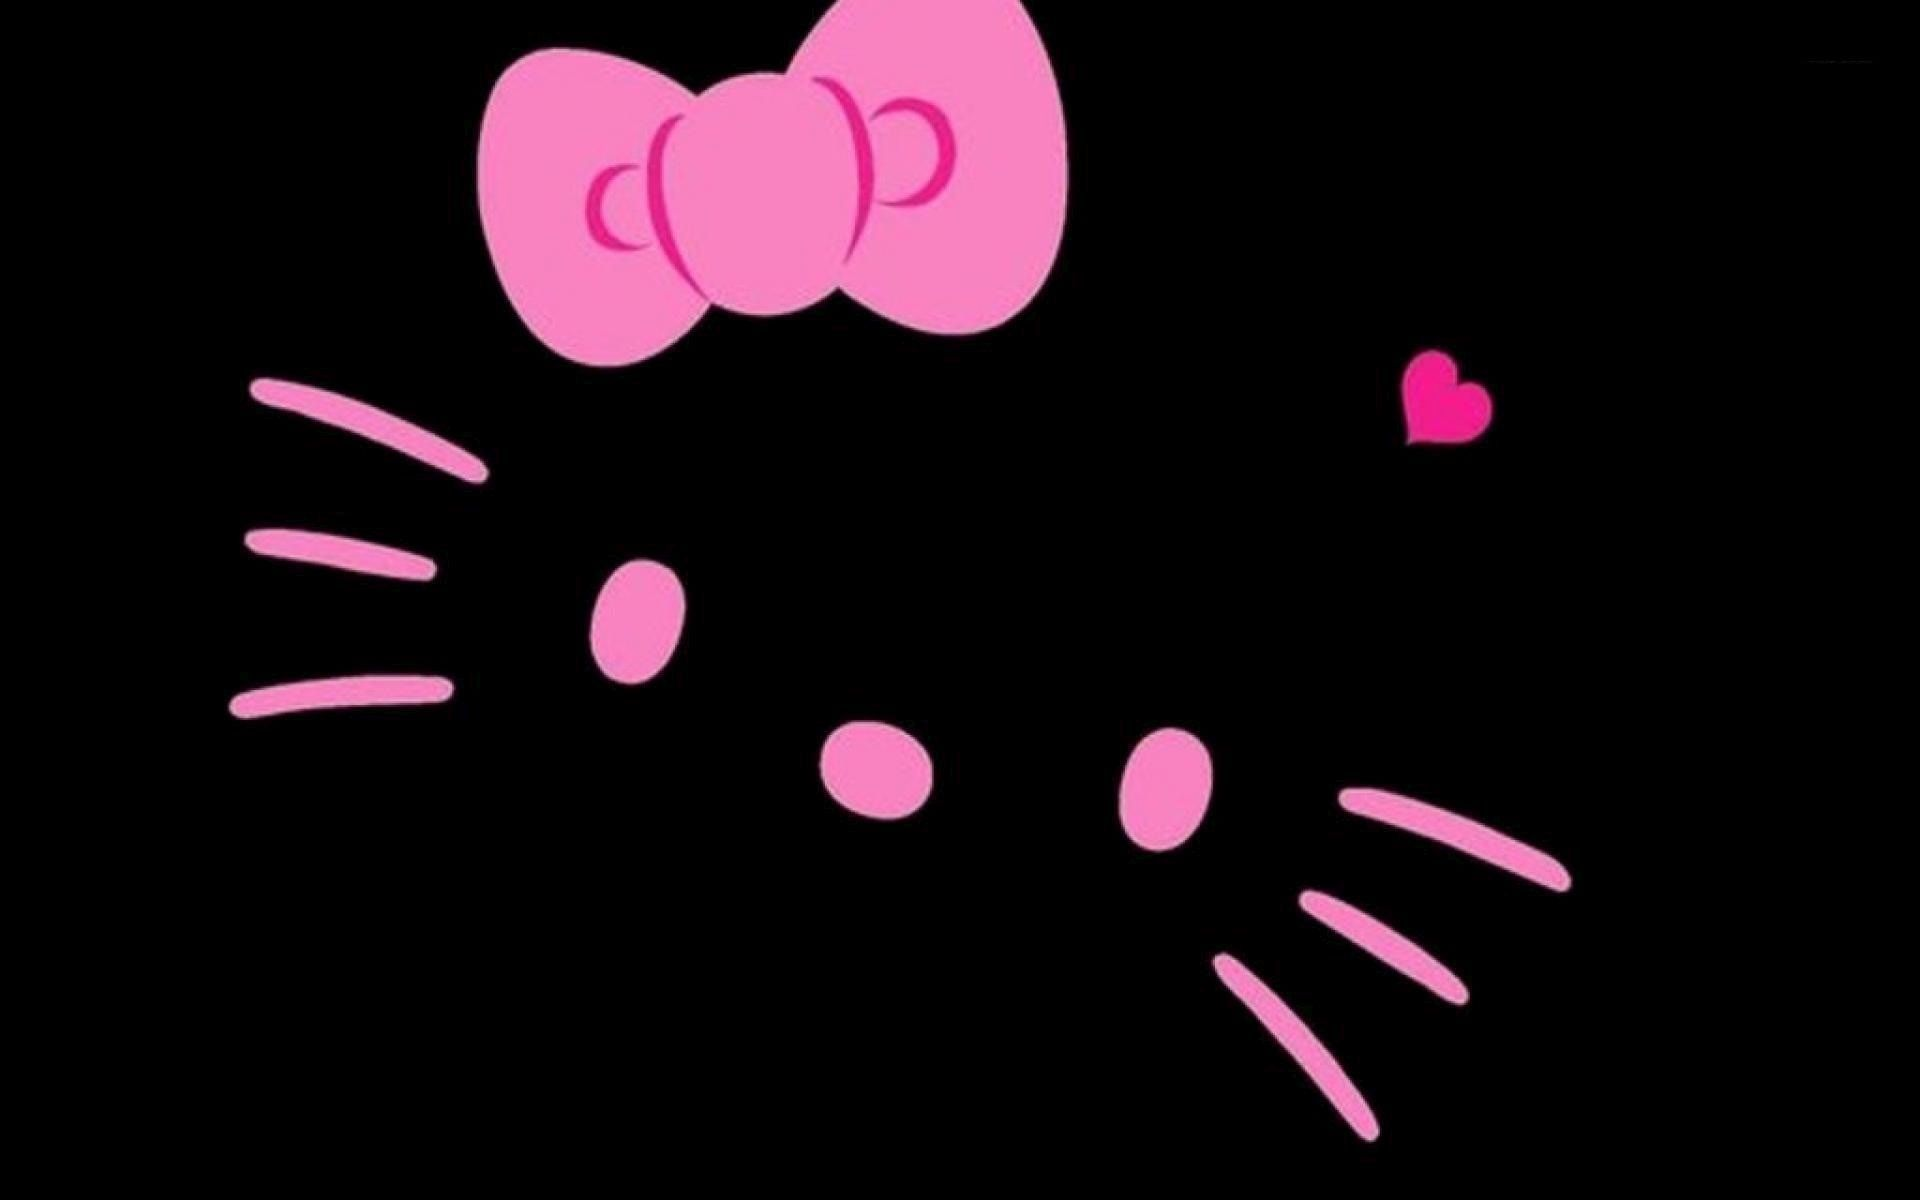 Hello Kitty Pink And Black Love Wallpaper High Resolution On Wallpaper 1080p Hd Hello Kitty Wallpaper Hello Kitty Wallpaper Hd Pink Wallpaper Hello Kitty